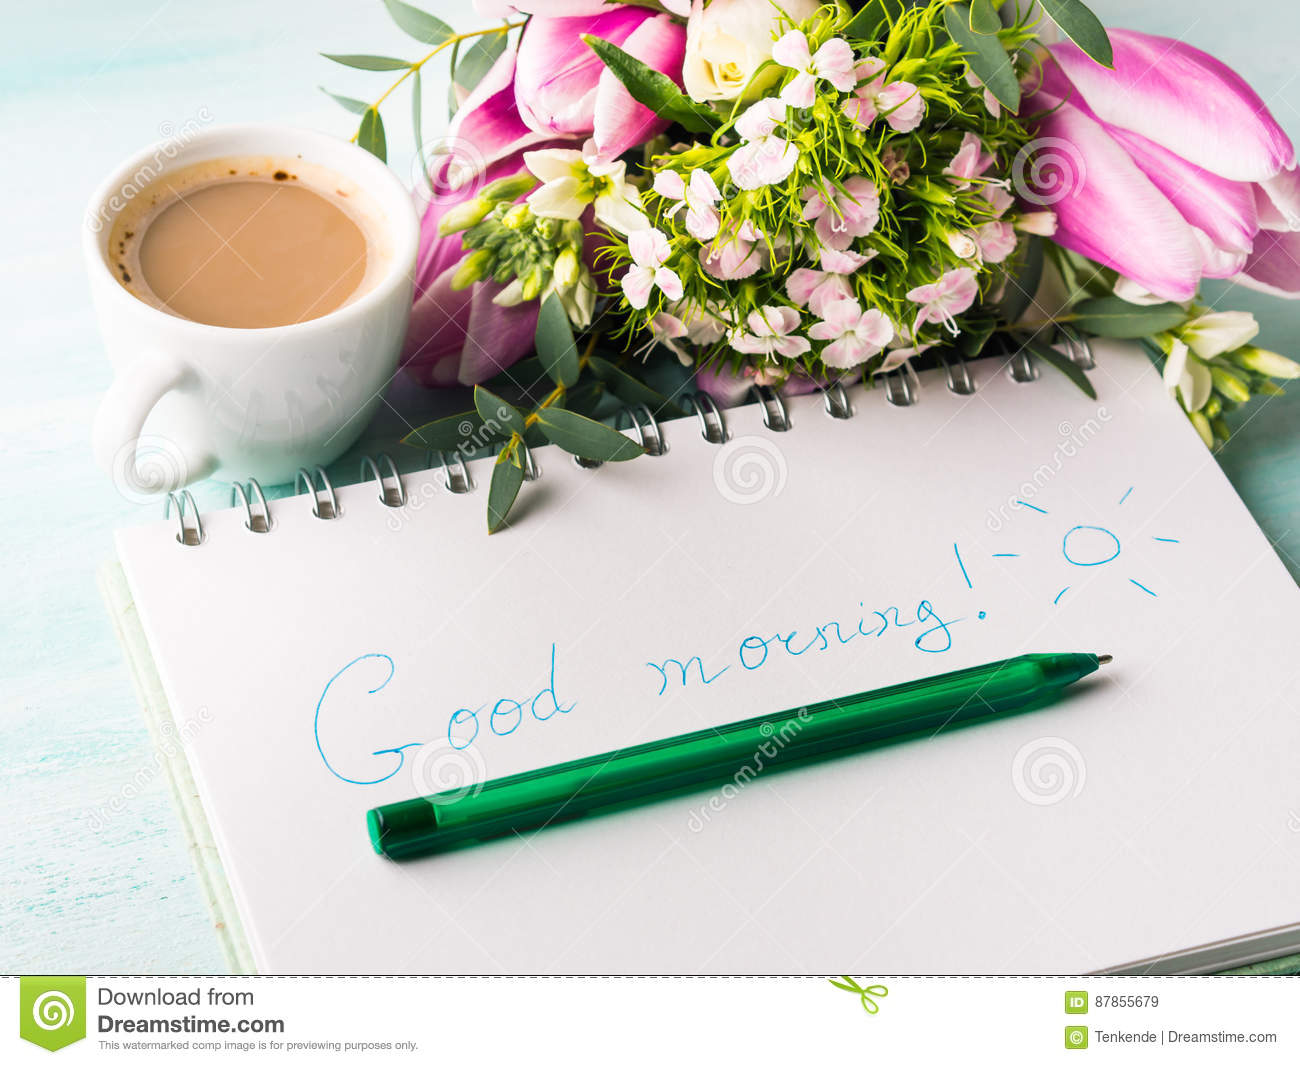 Wish good morning on notebook page and coffee